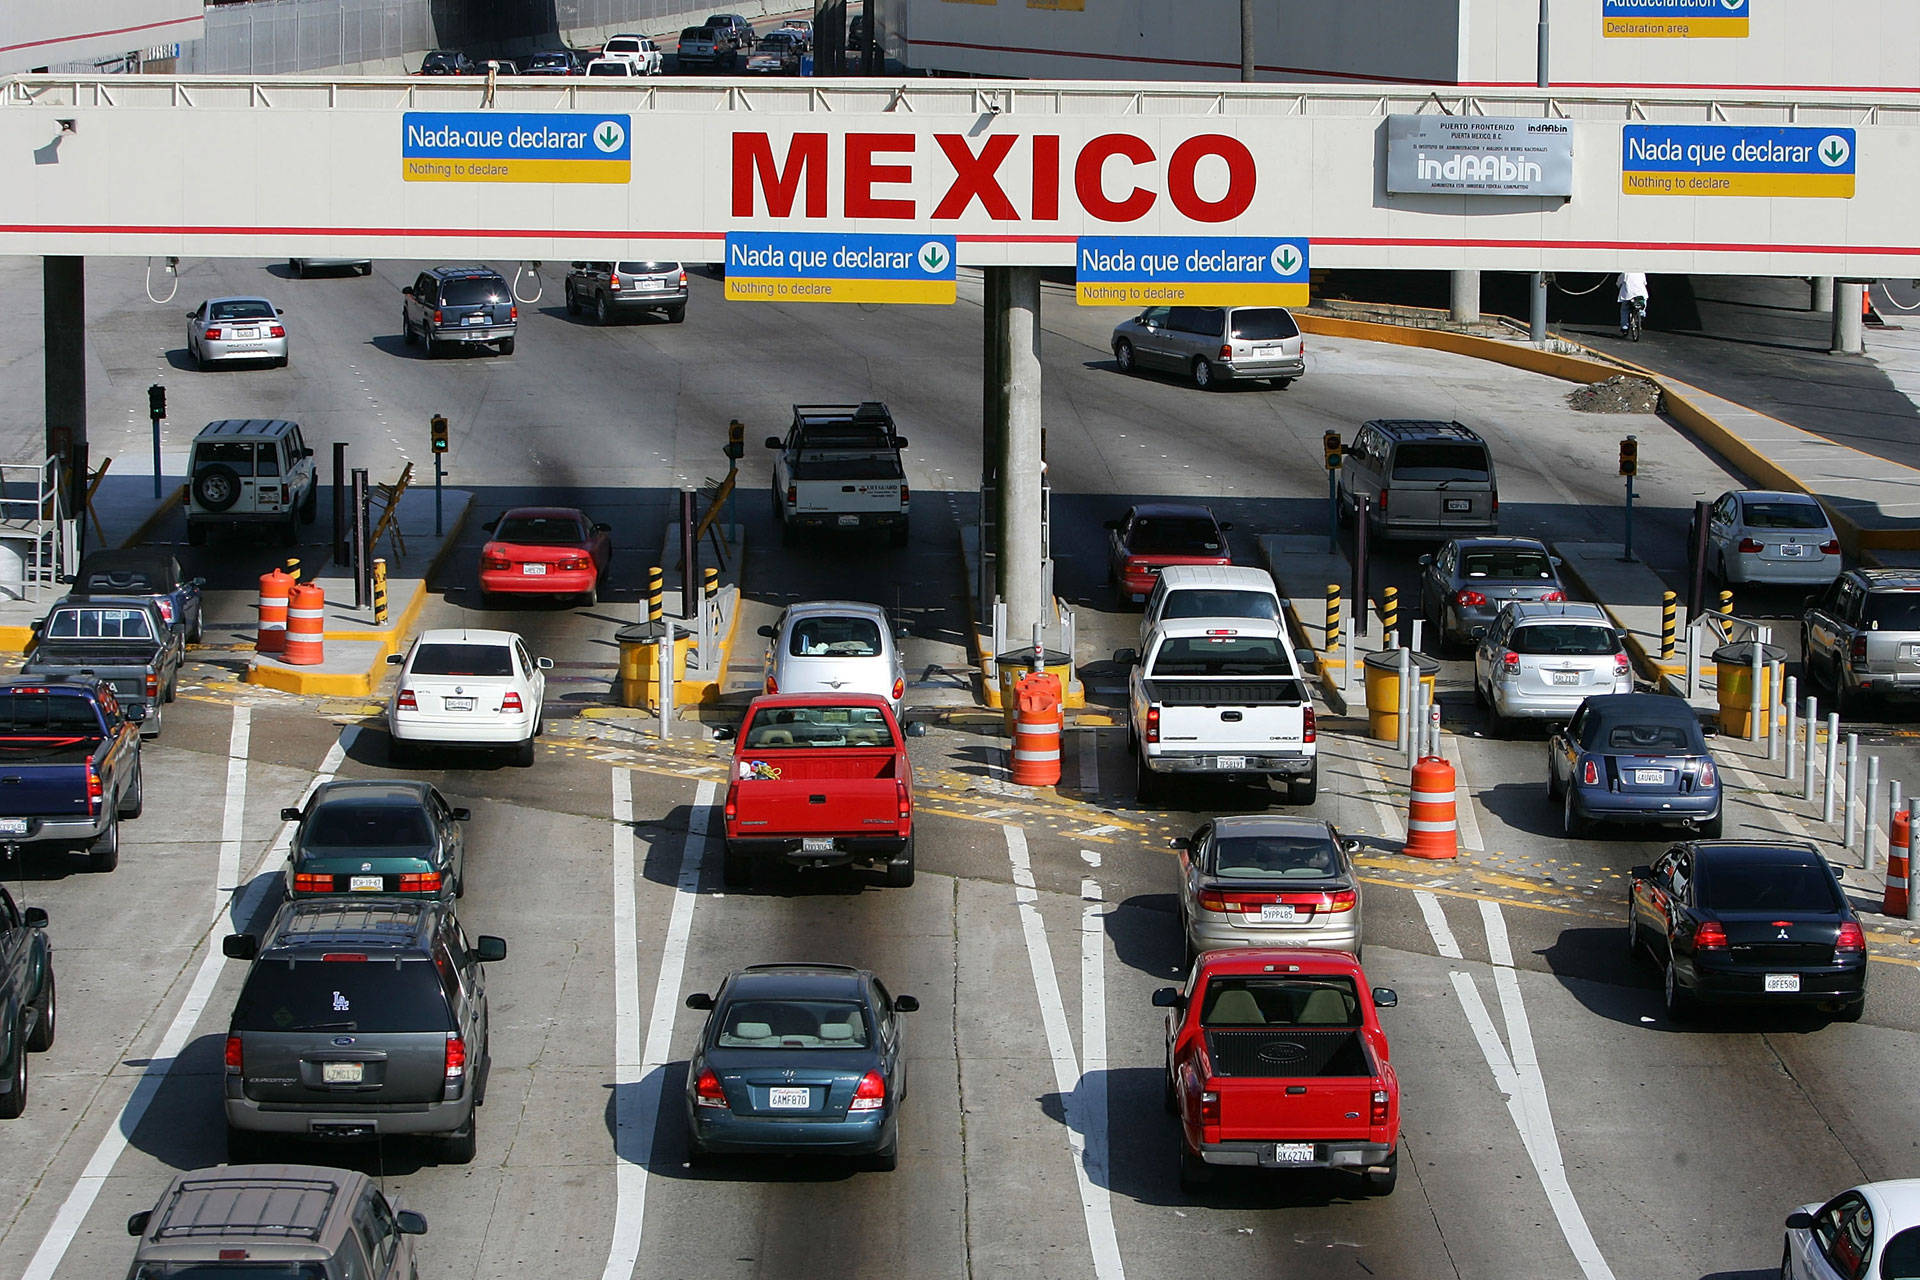 Traffic enters Mexico from the U.S. at the San Ysidro border crossing. David McNew/Getty Images